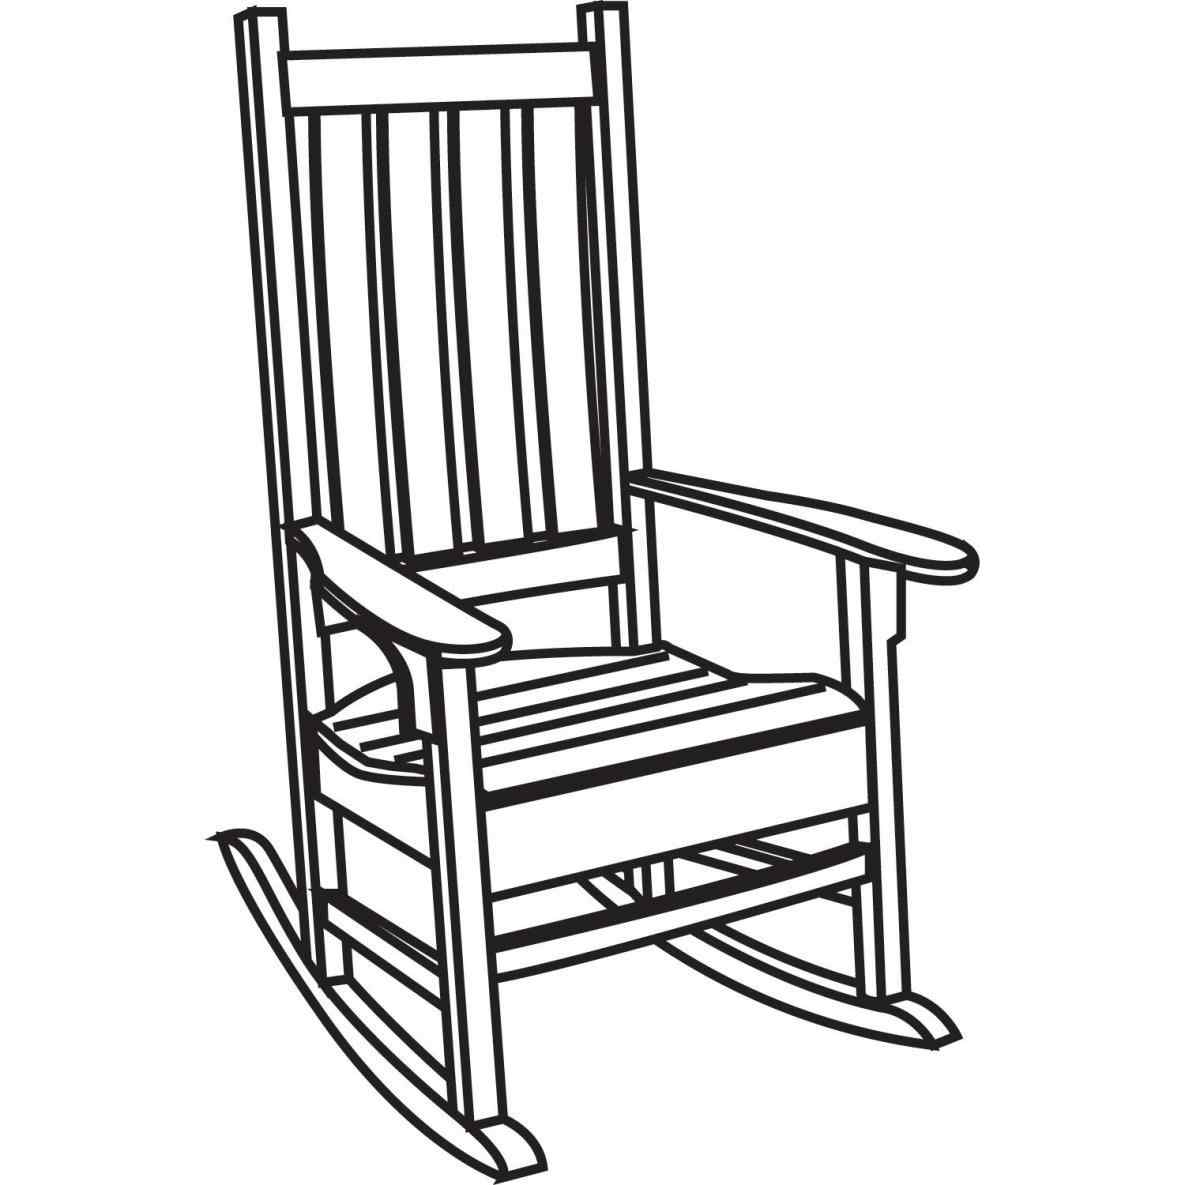 1185x1185 Chair Drawing For Free Download